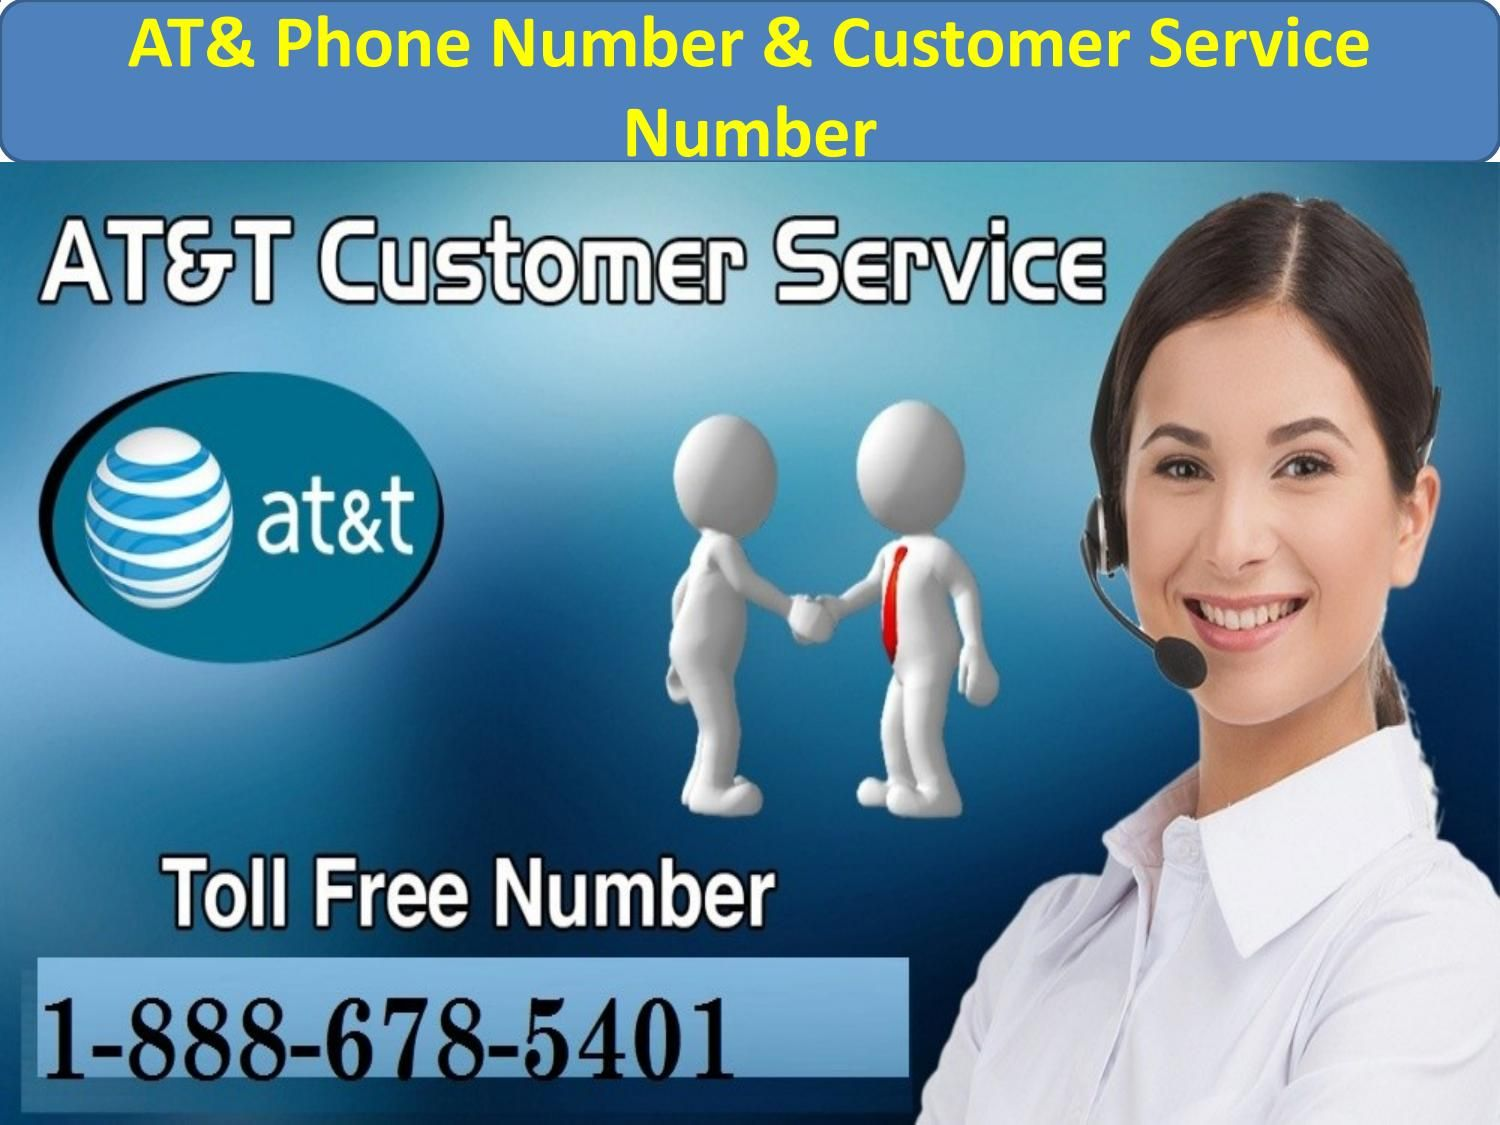 AT&T Phone Number & Customer Service Number 18886785401